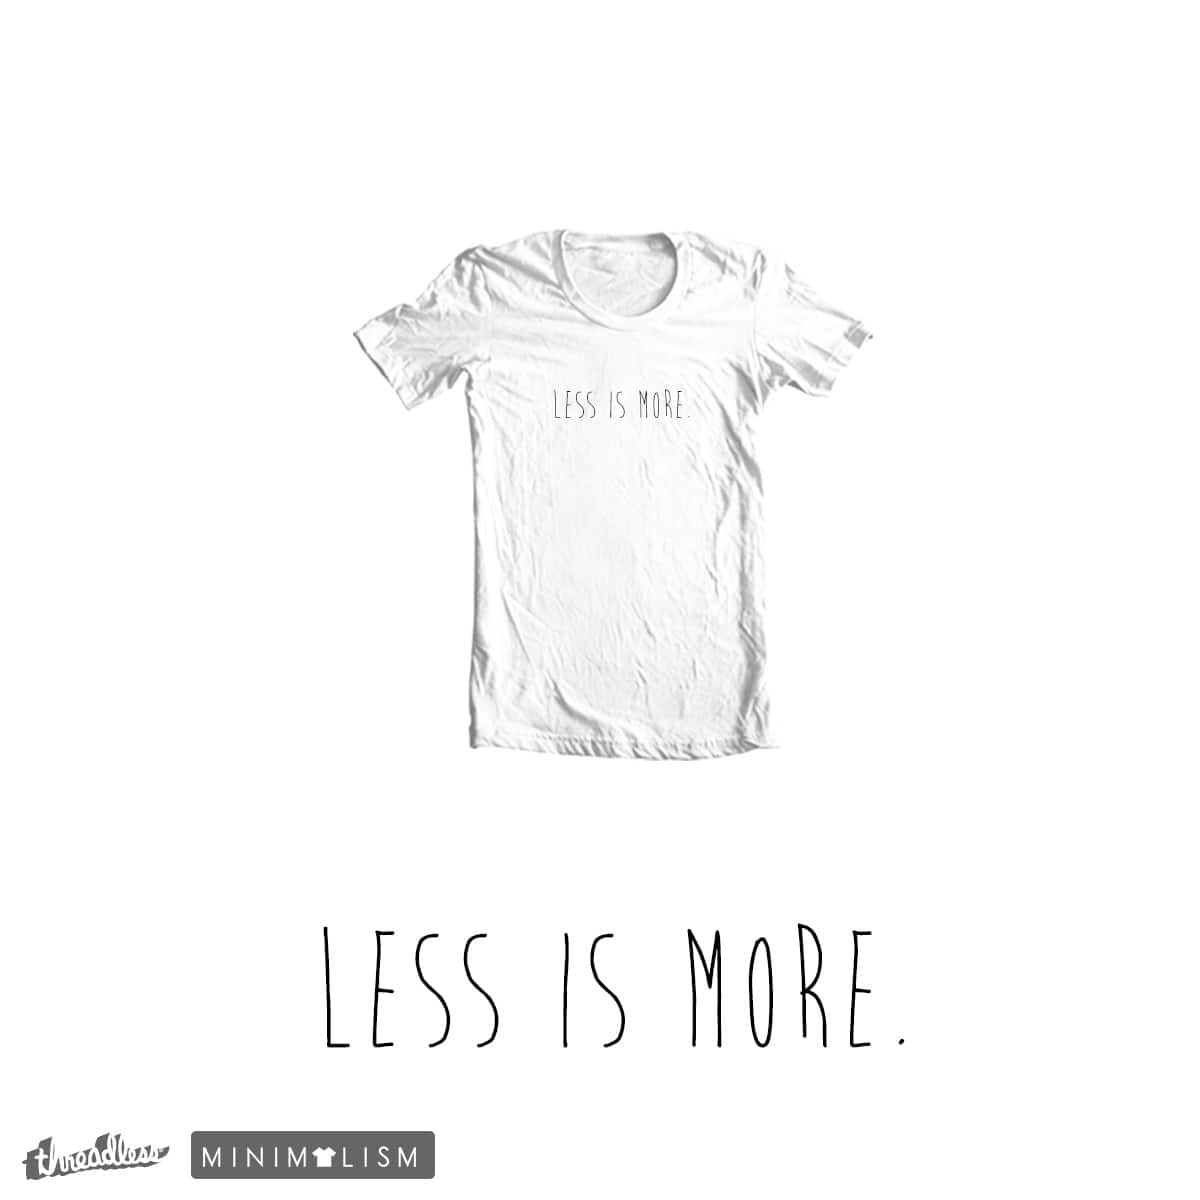 Less is more by coclodesign on Threadless